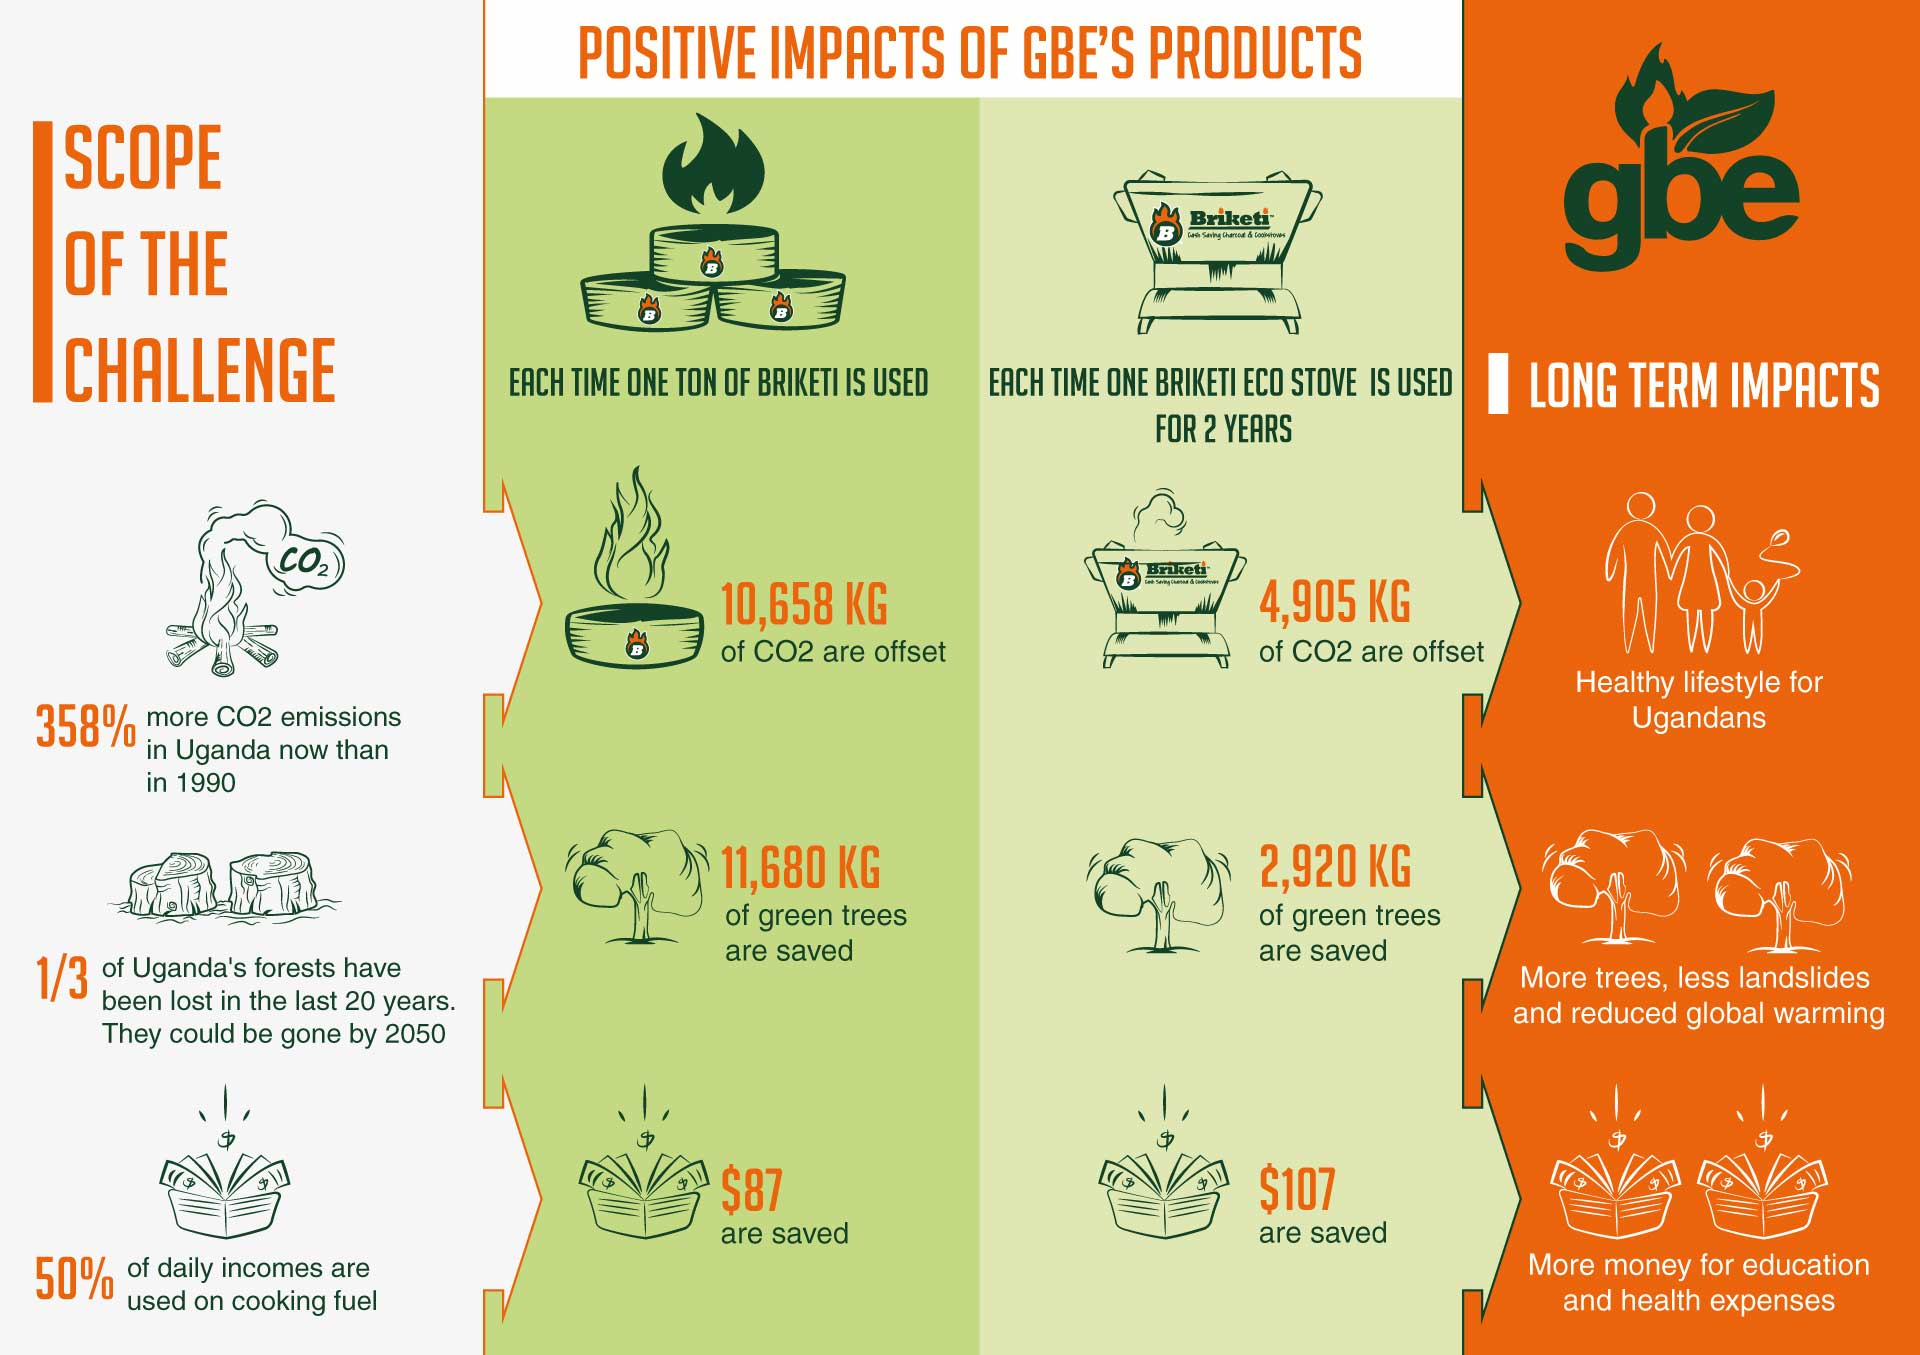 Positive Impact of GBE's Products